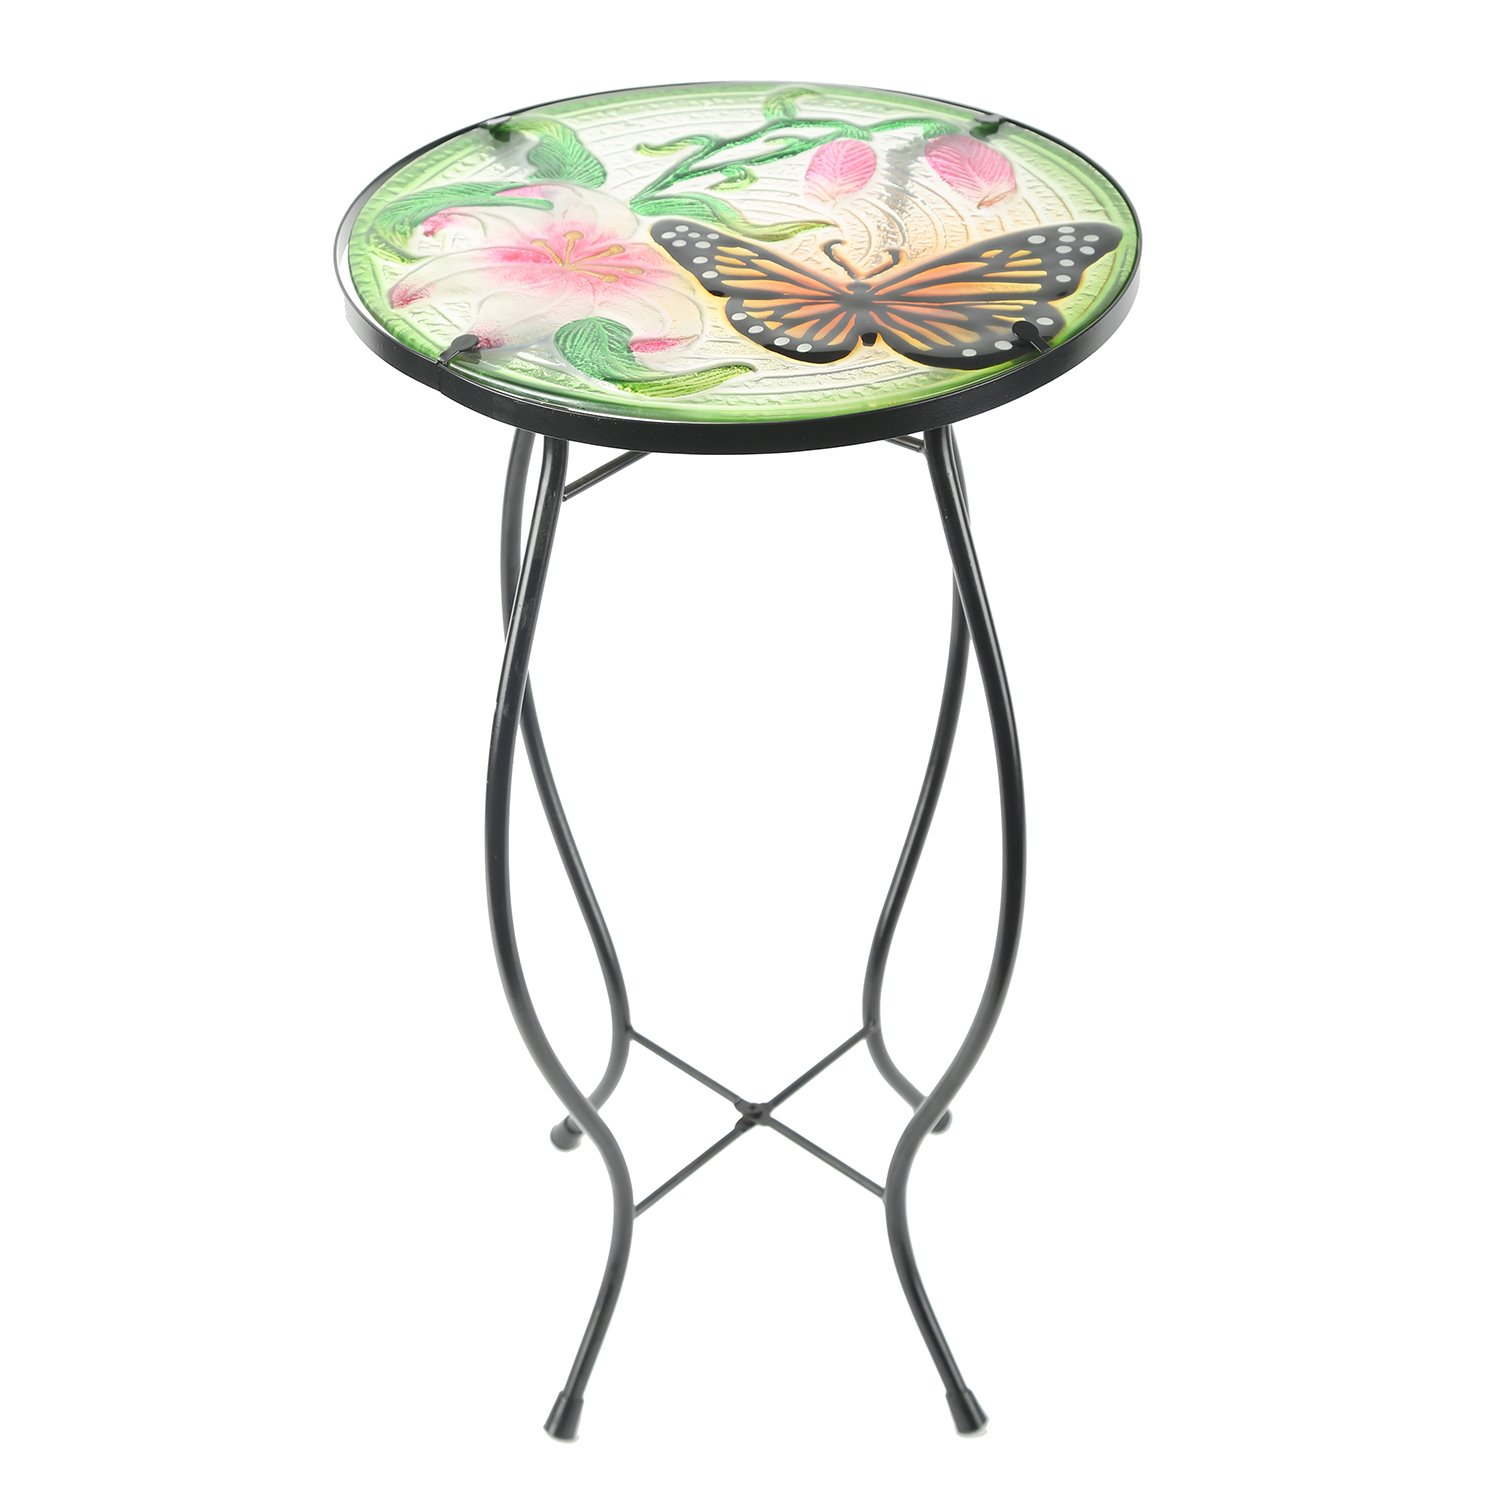 cedar home side table outdoor garden patio metal accent cbl painted desk with round hand glass pink plastic covers nate berkus coffee wooden bedside lamps jofran charging station